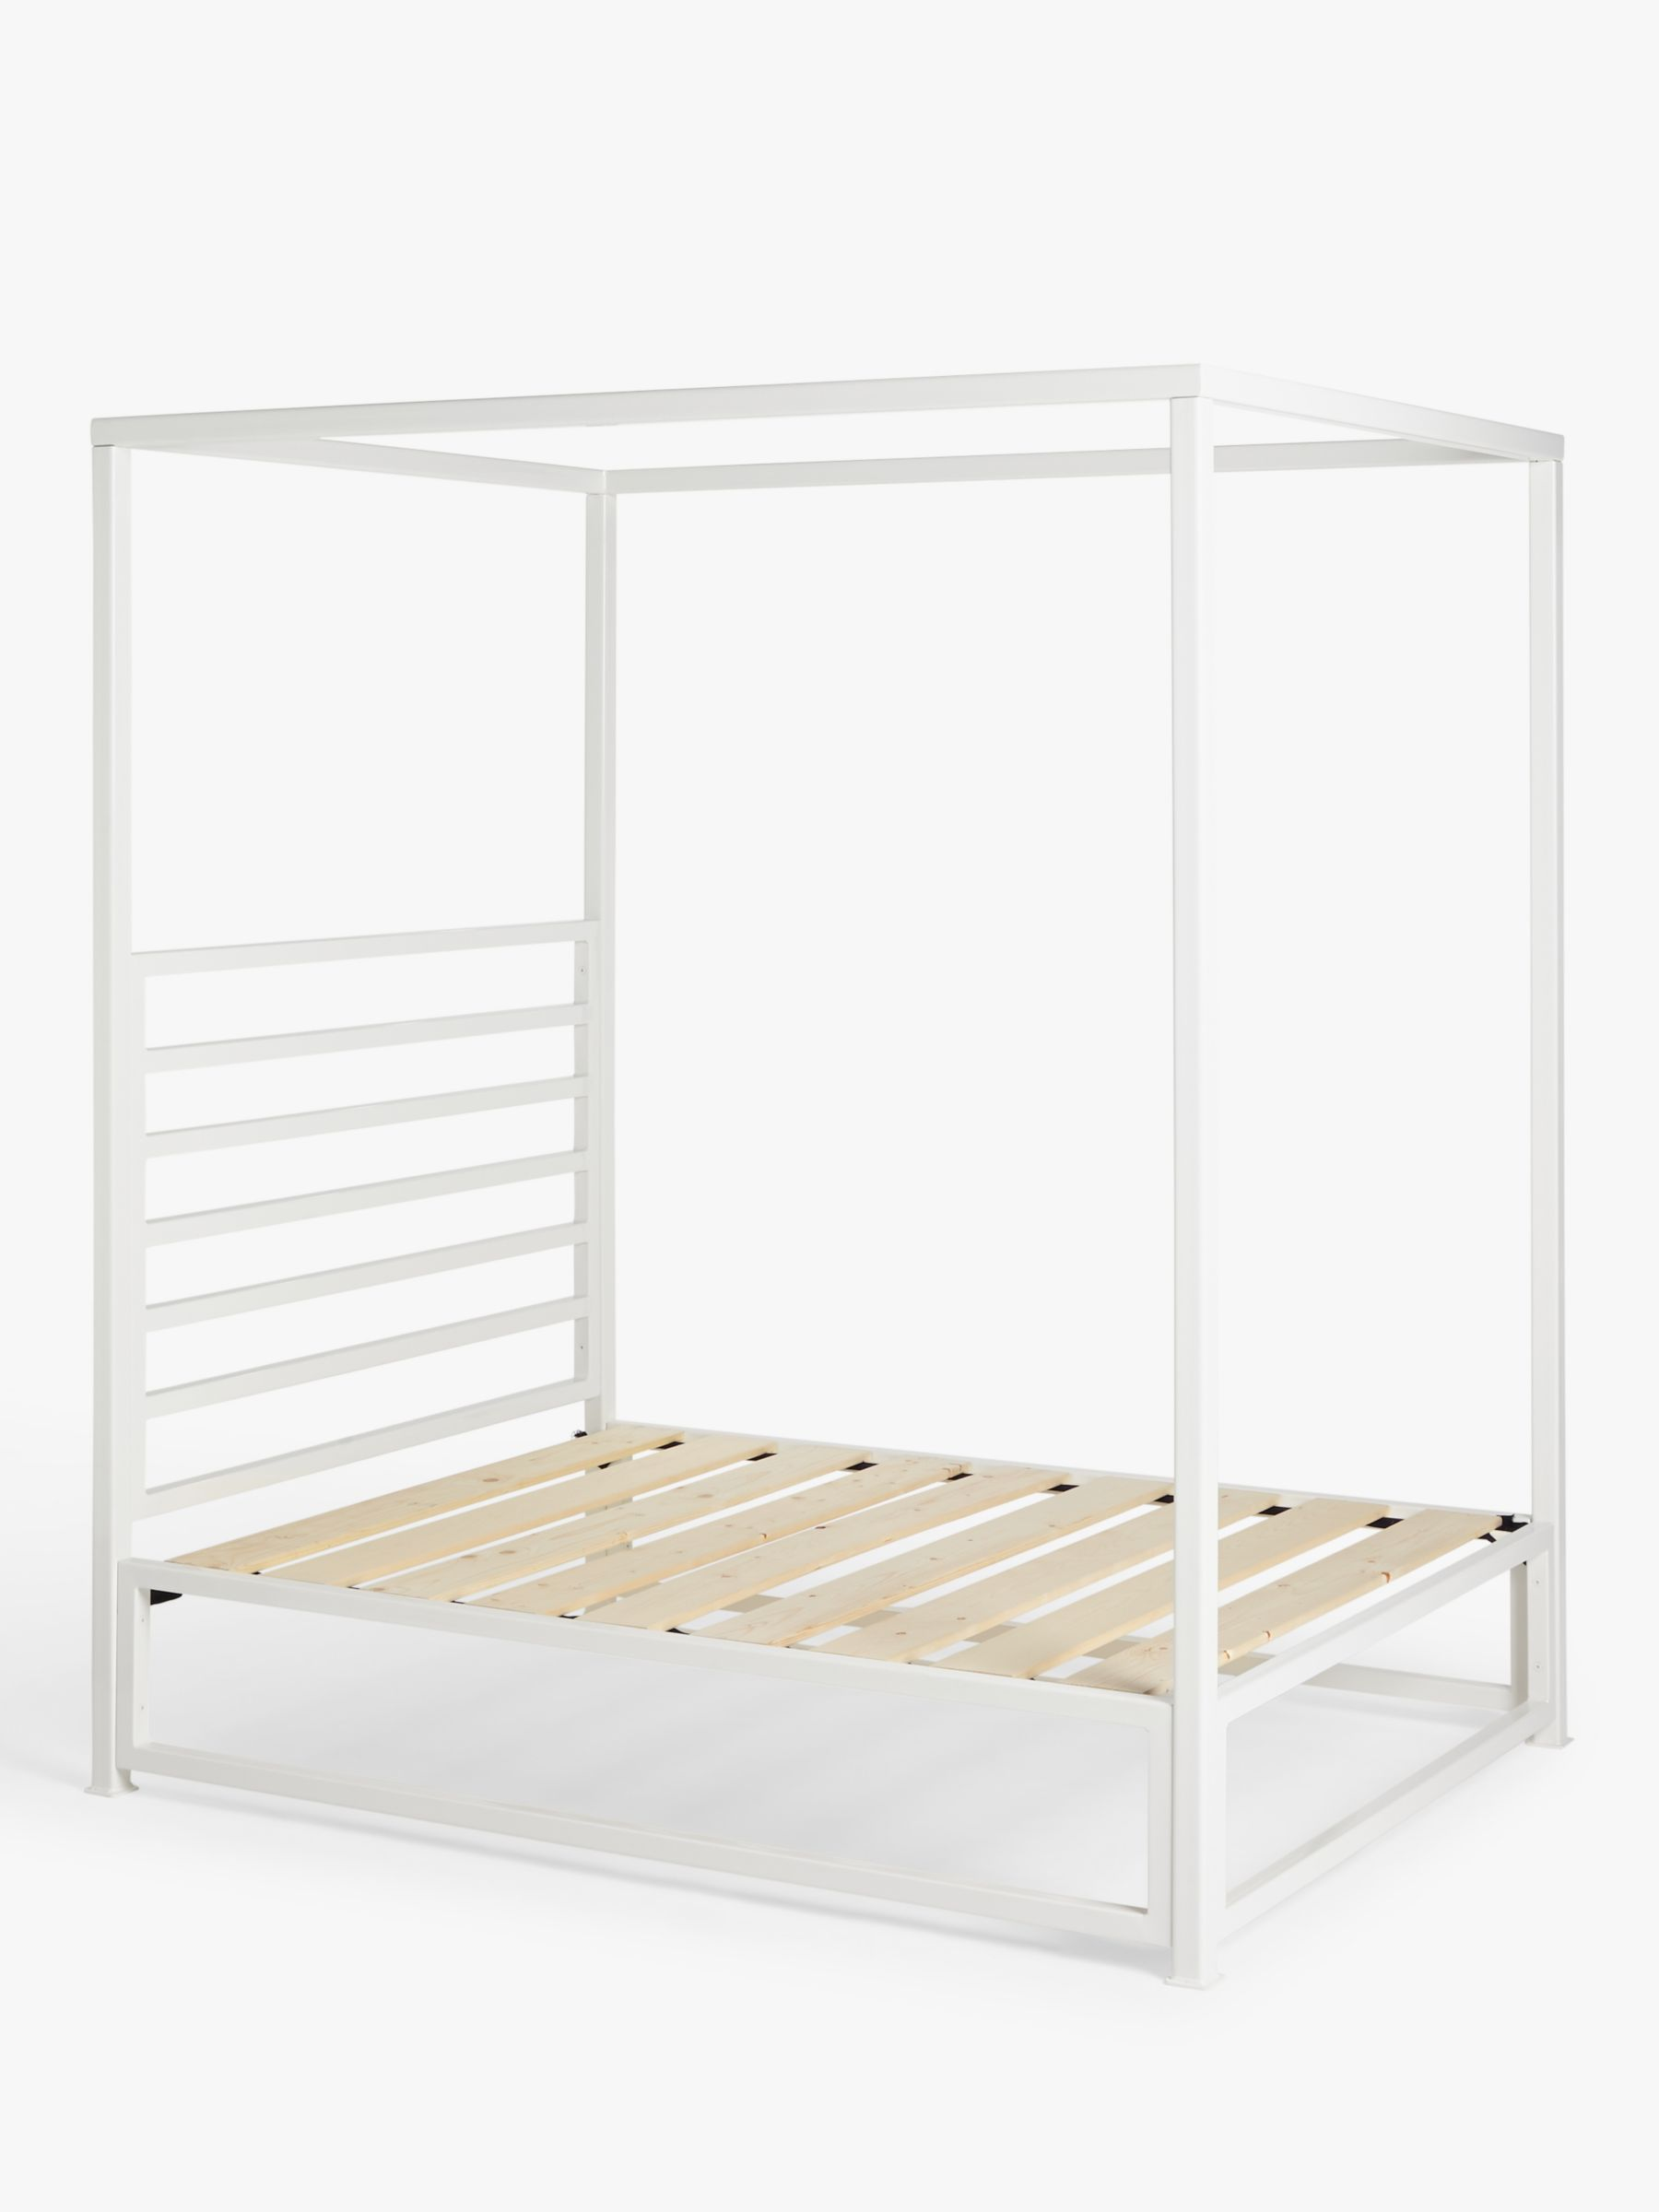 wrought iron and brass bed co sunna 4 poster outdoor bed frame and open coil mattress king size